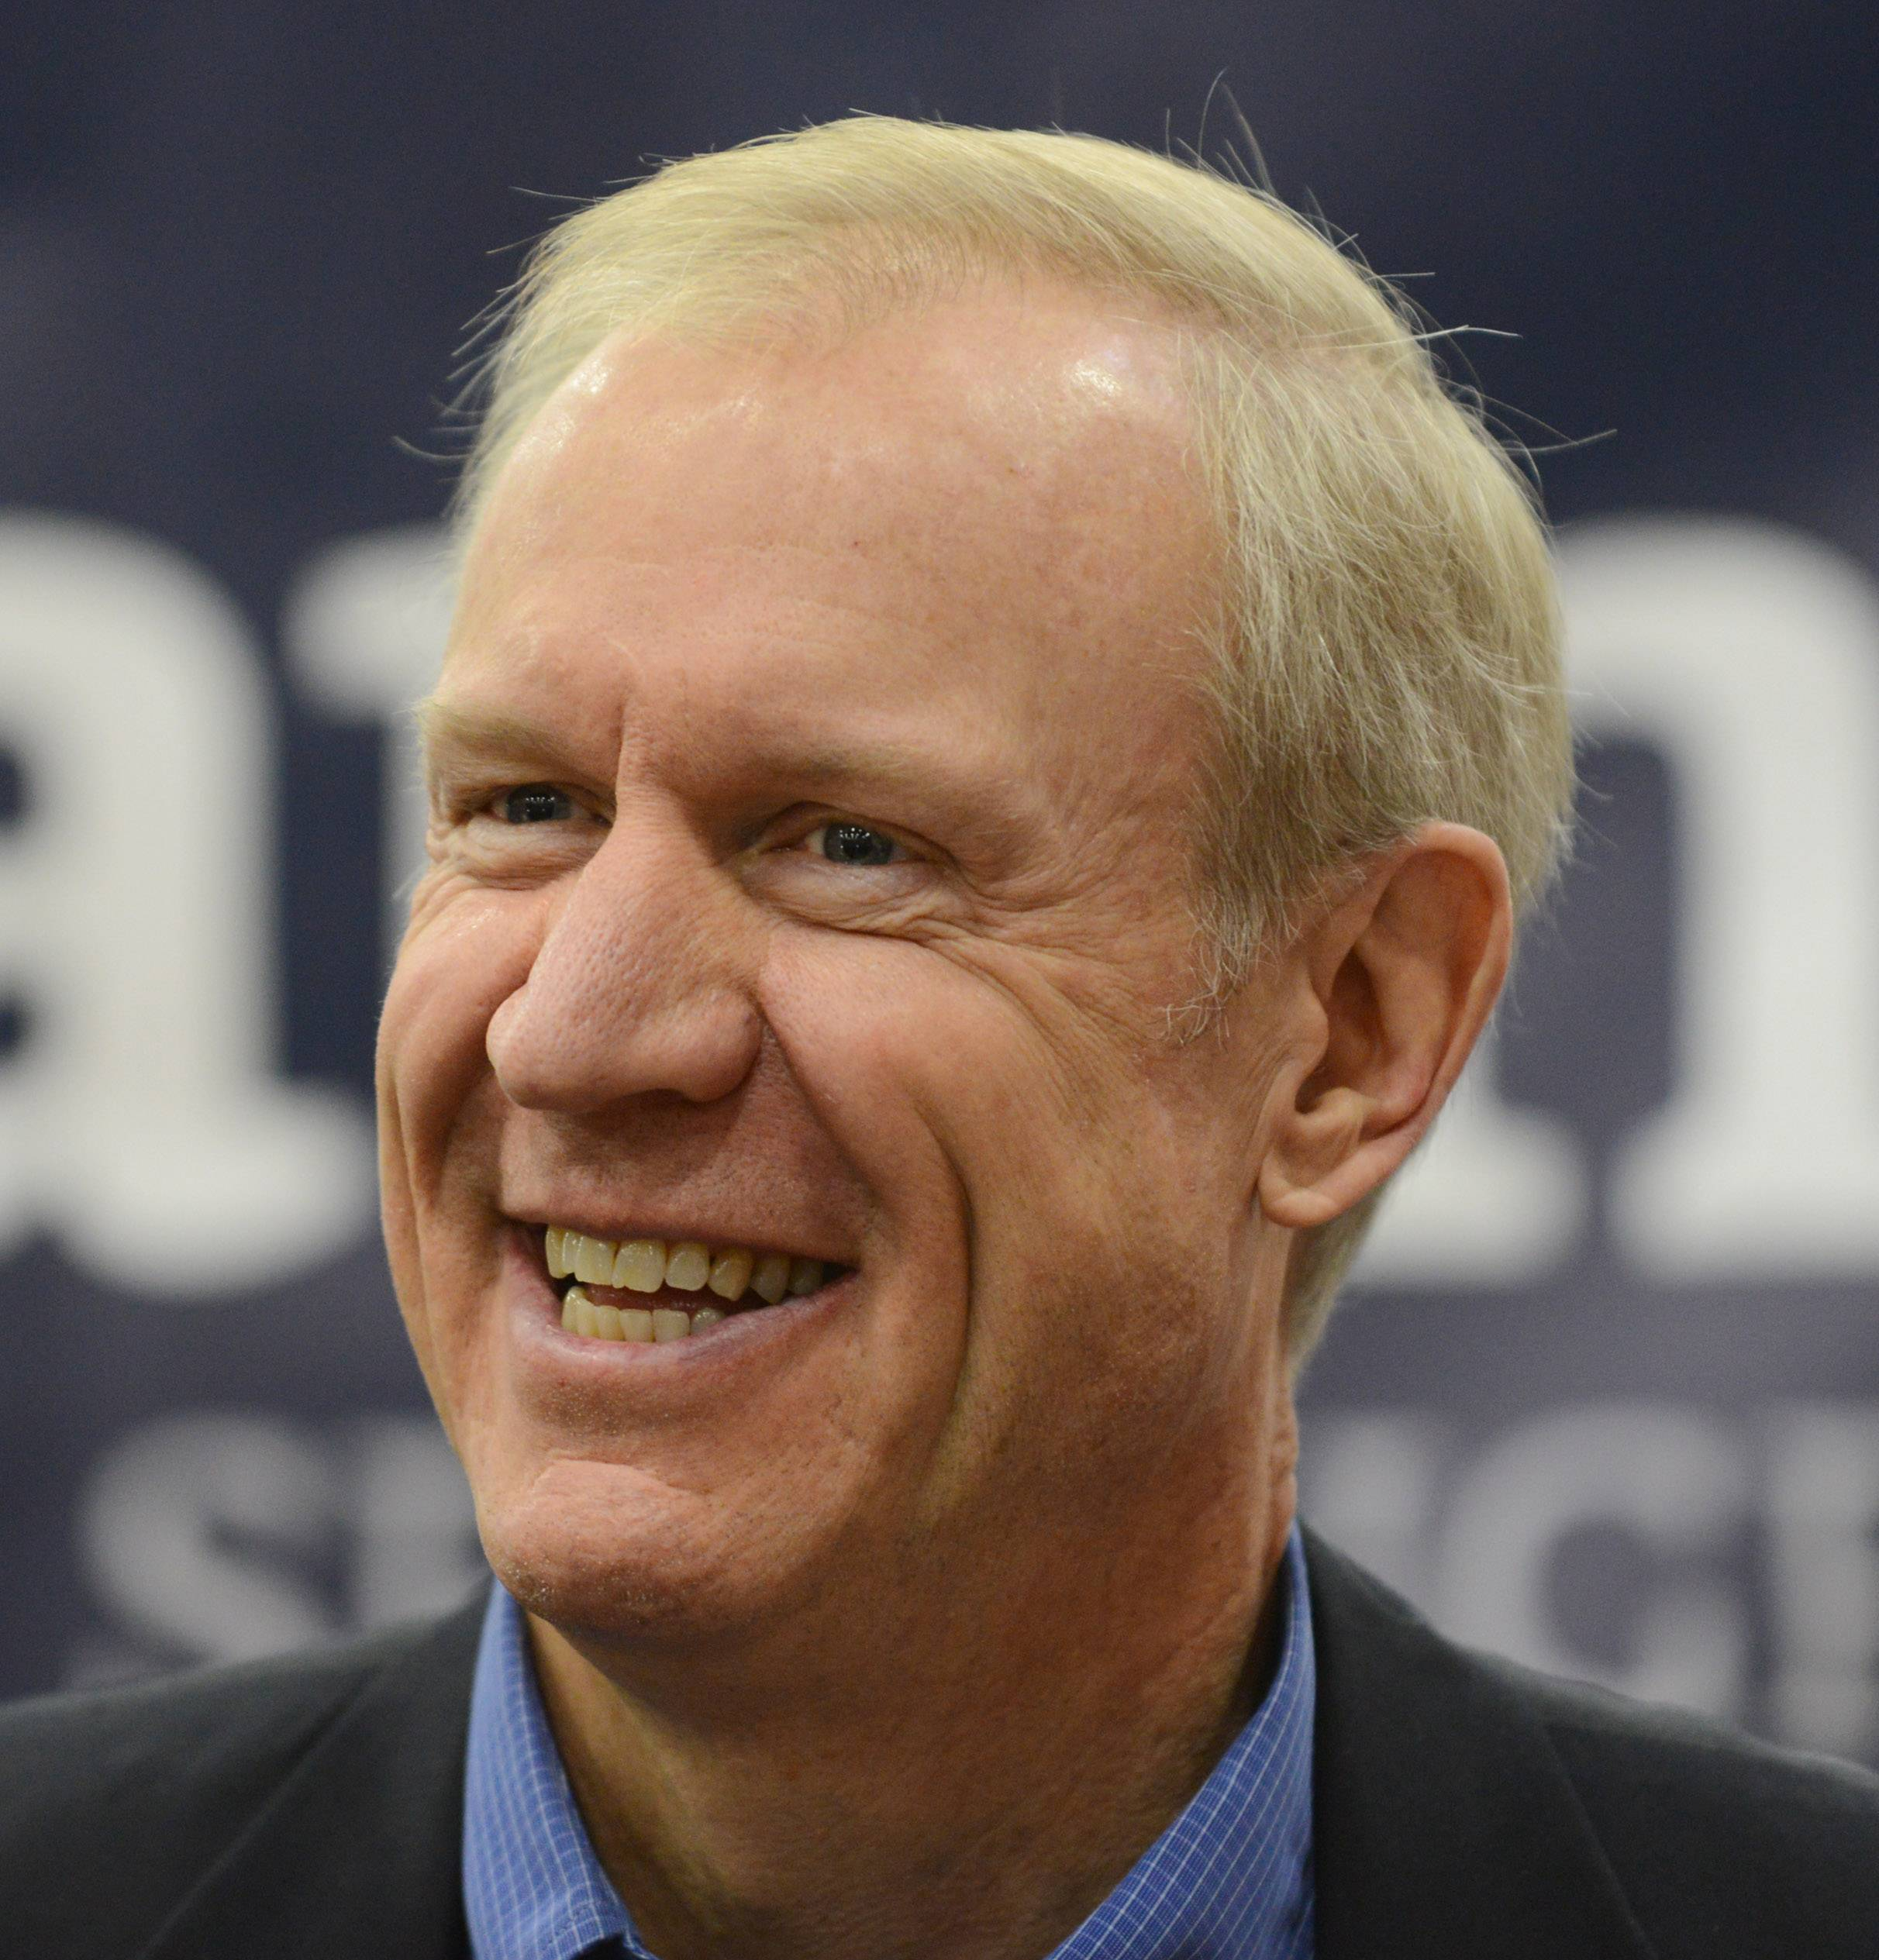 Governor Rauner to speak at manufacturing expo